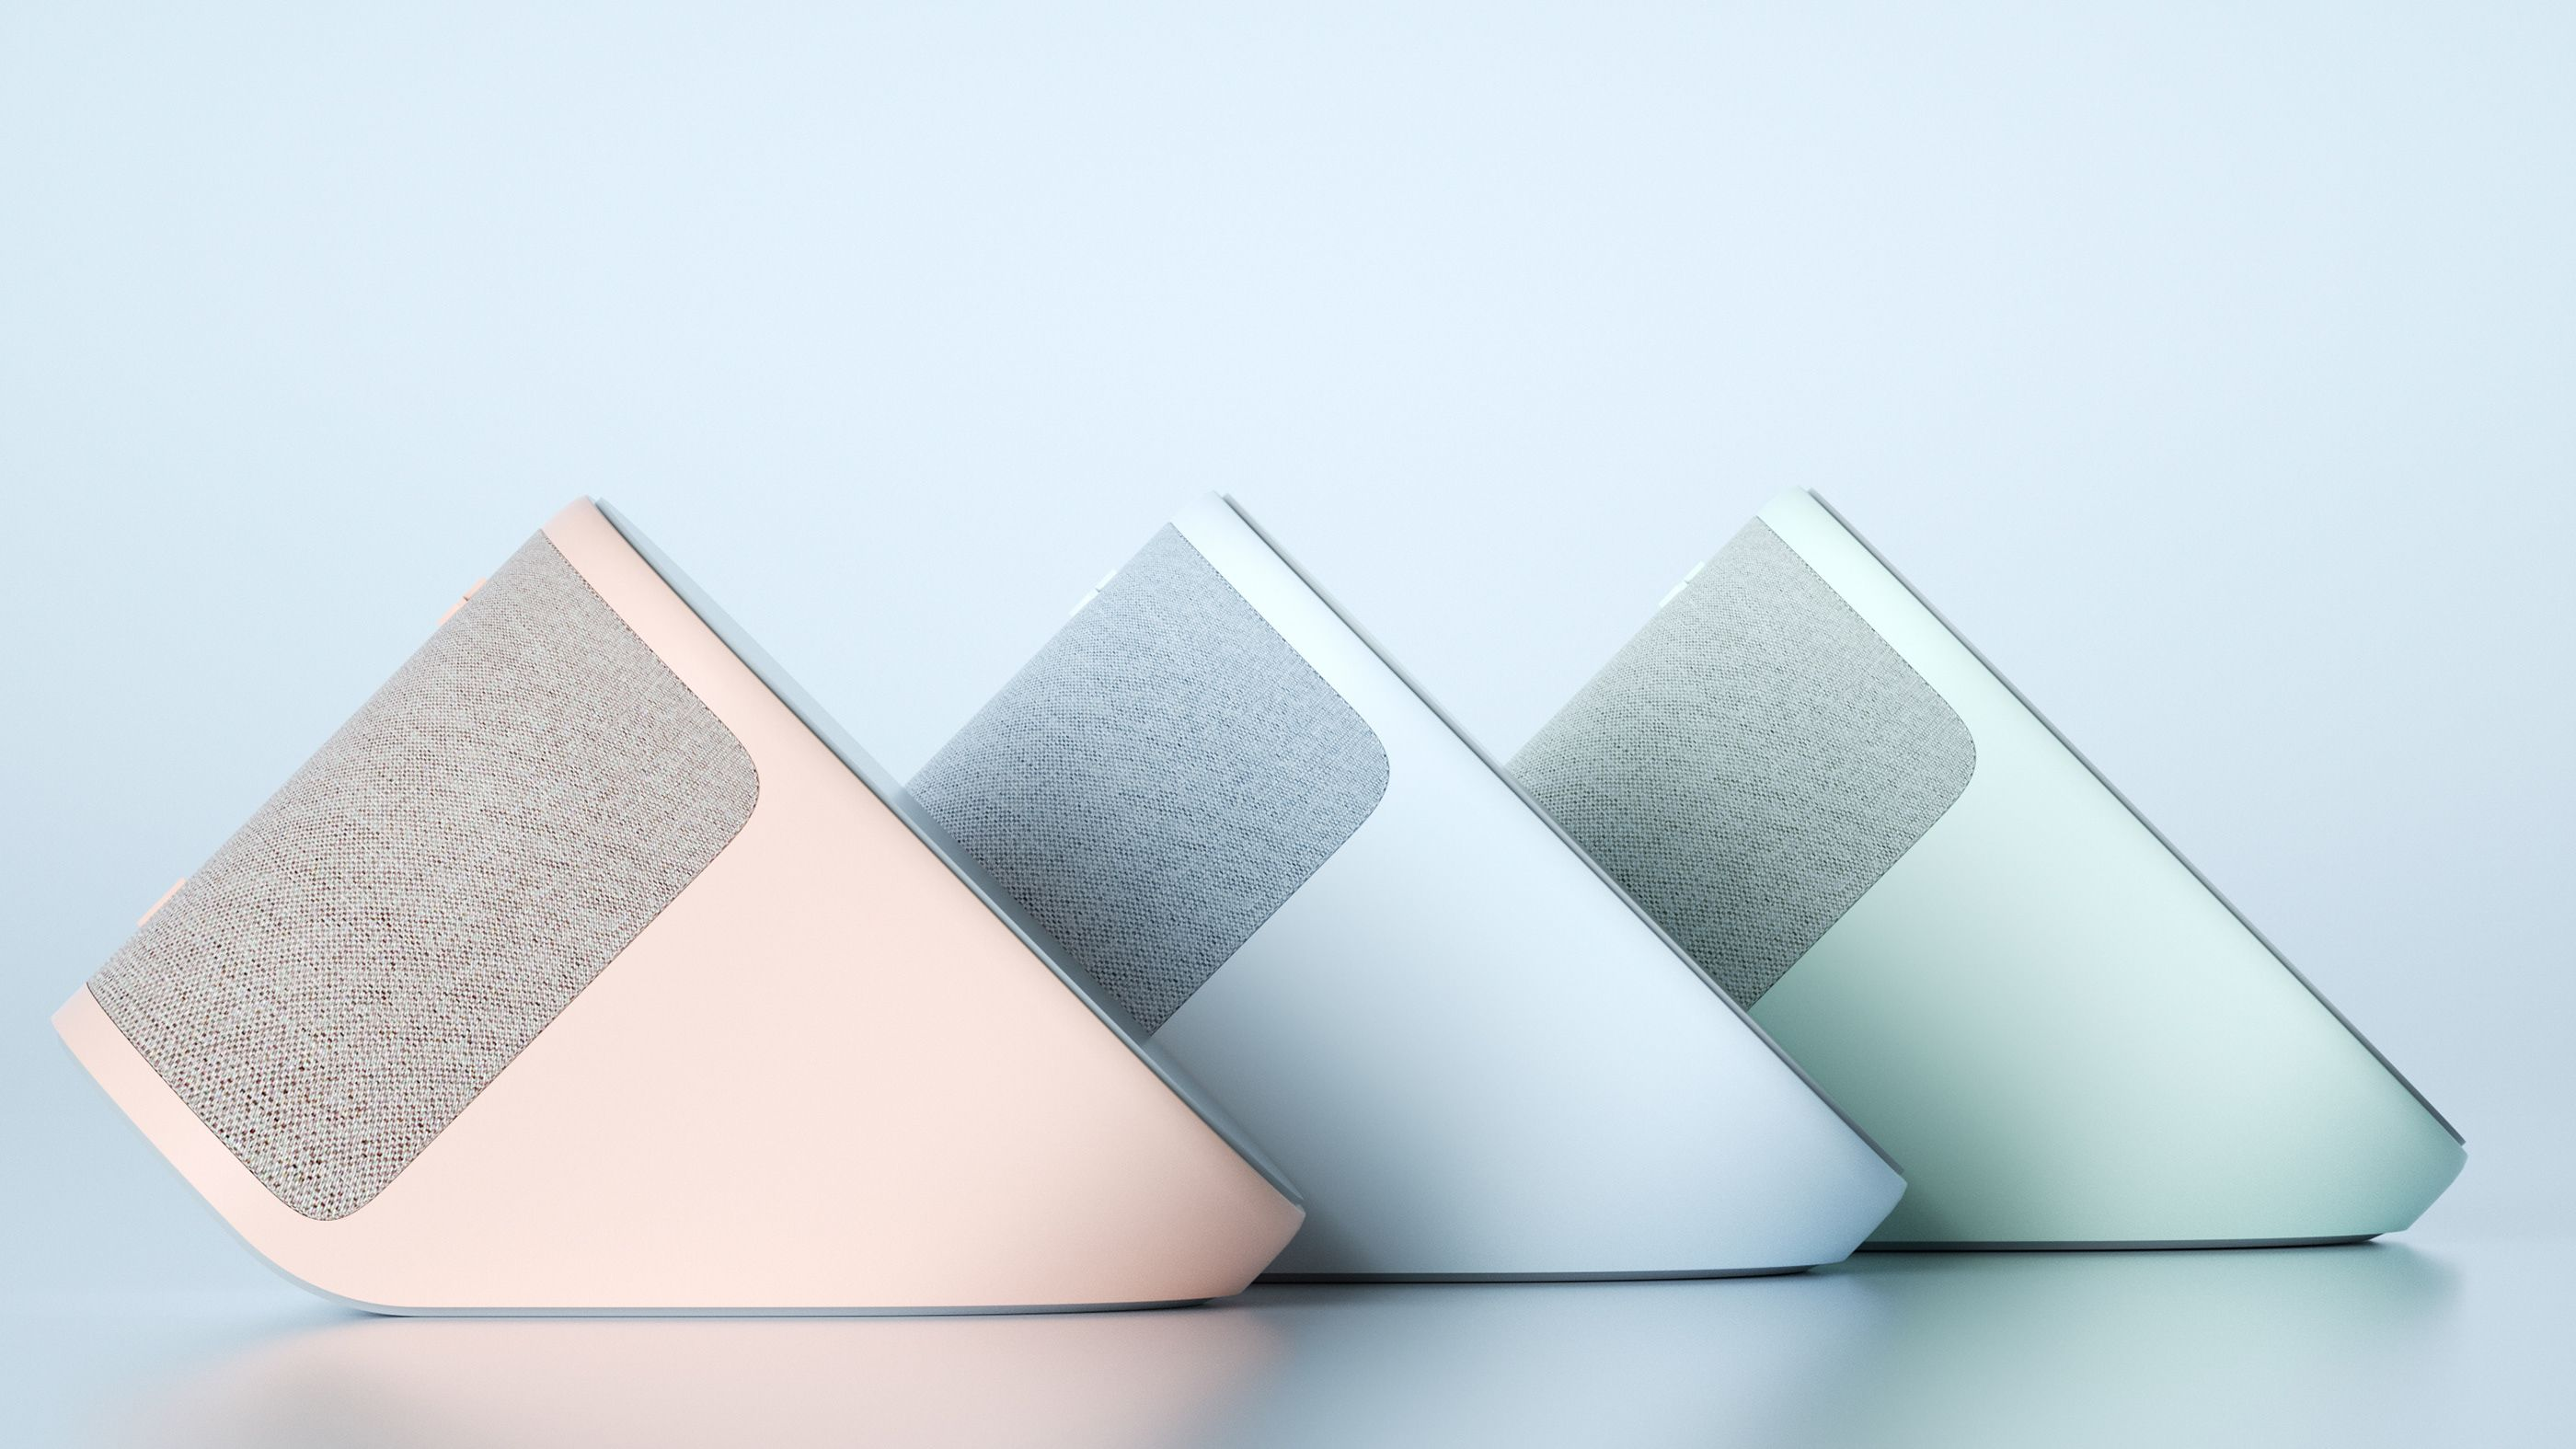 Fast wireless charger with bluetooth speaker on behance